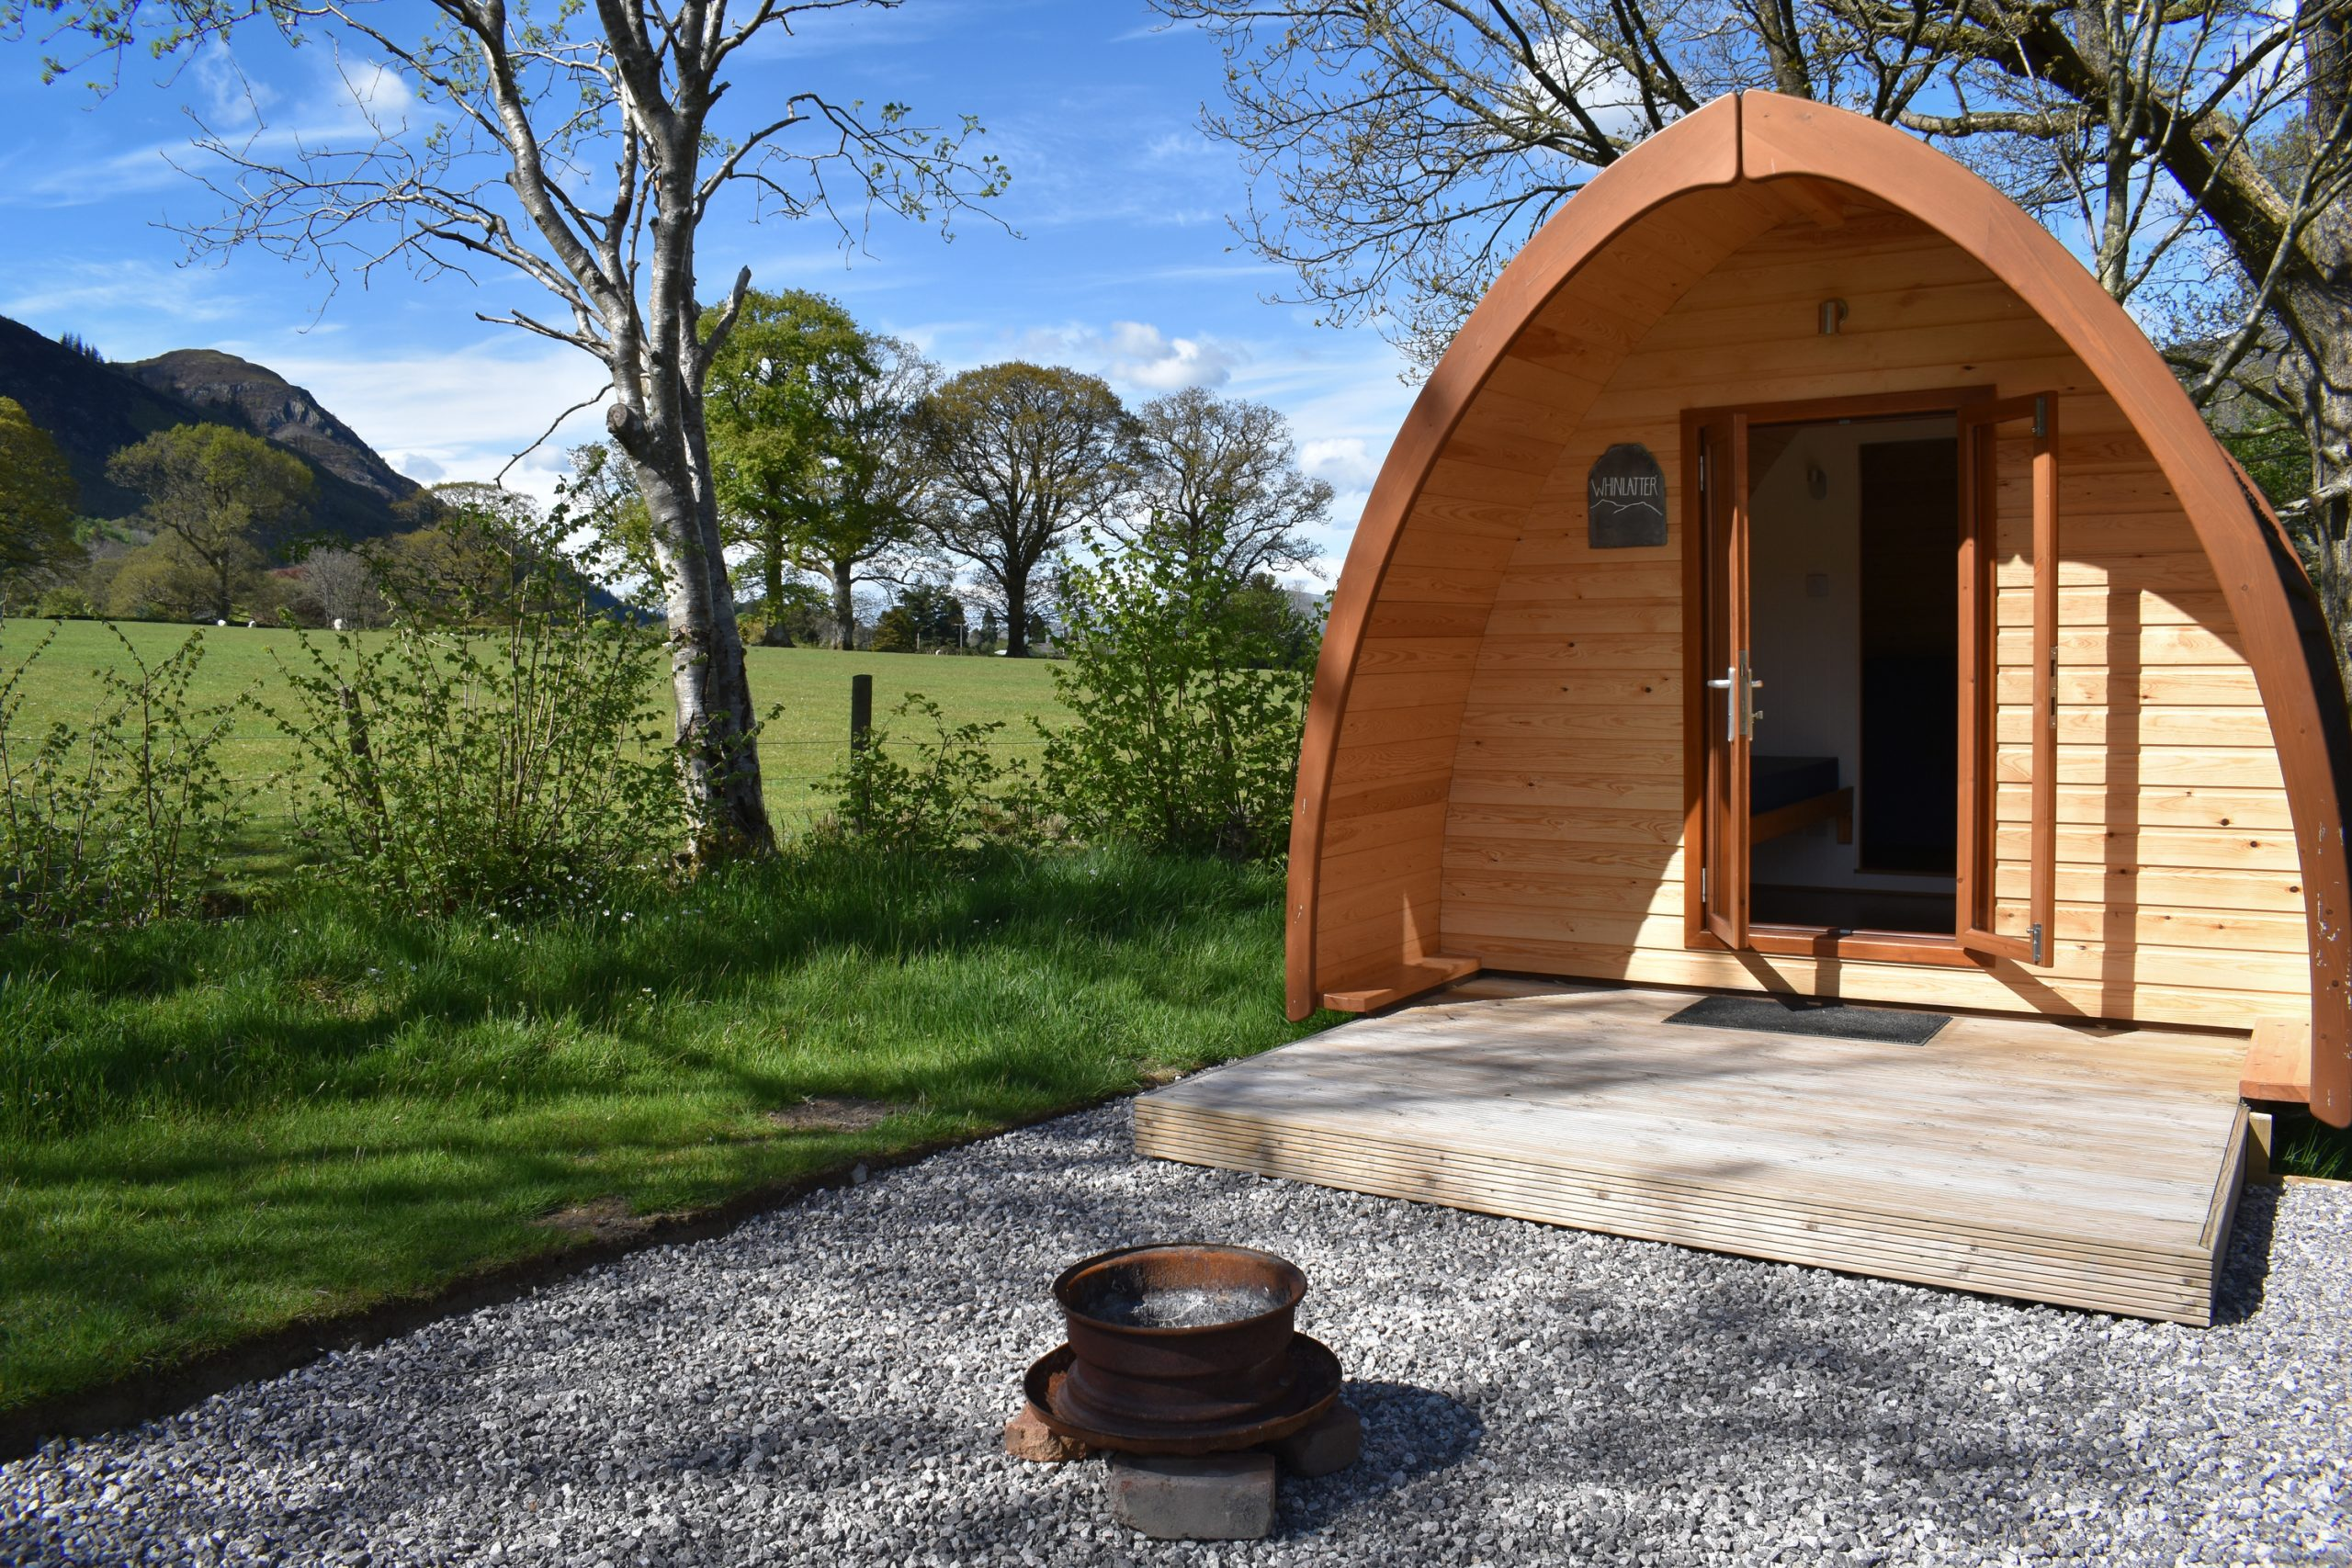 'Whinlatter', Family Plus Pod at Lanefoot Farm Campsite